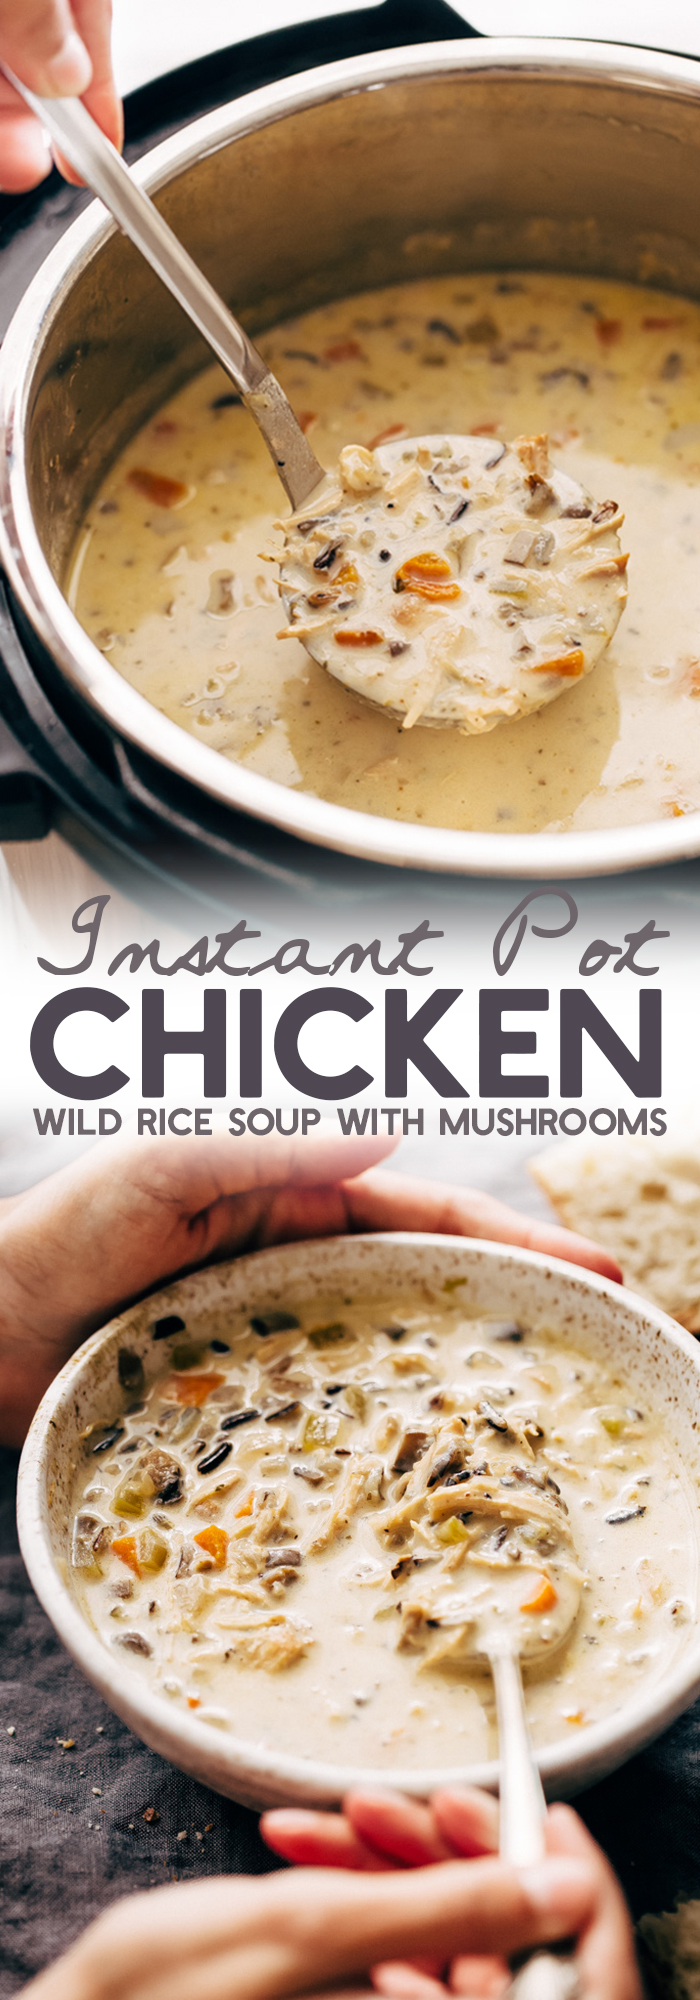 Instant Pot Chicken Wild Rice Soup - this soup is warm and filling and takes 45 minutes to make from start to finish! #instantpot #pressurecooker #soup #chickenwildricesoup #wildricesoup | Littlespicejar.com